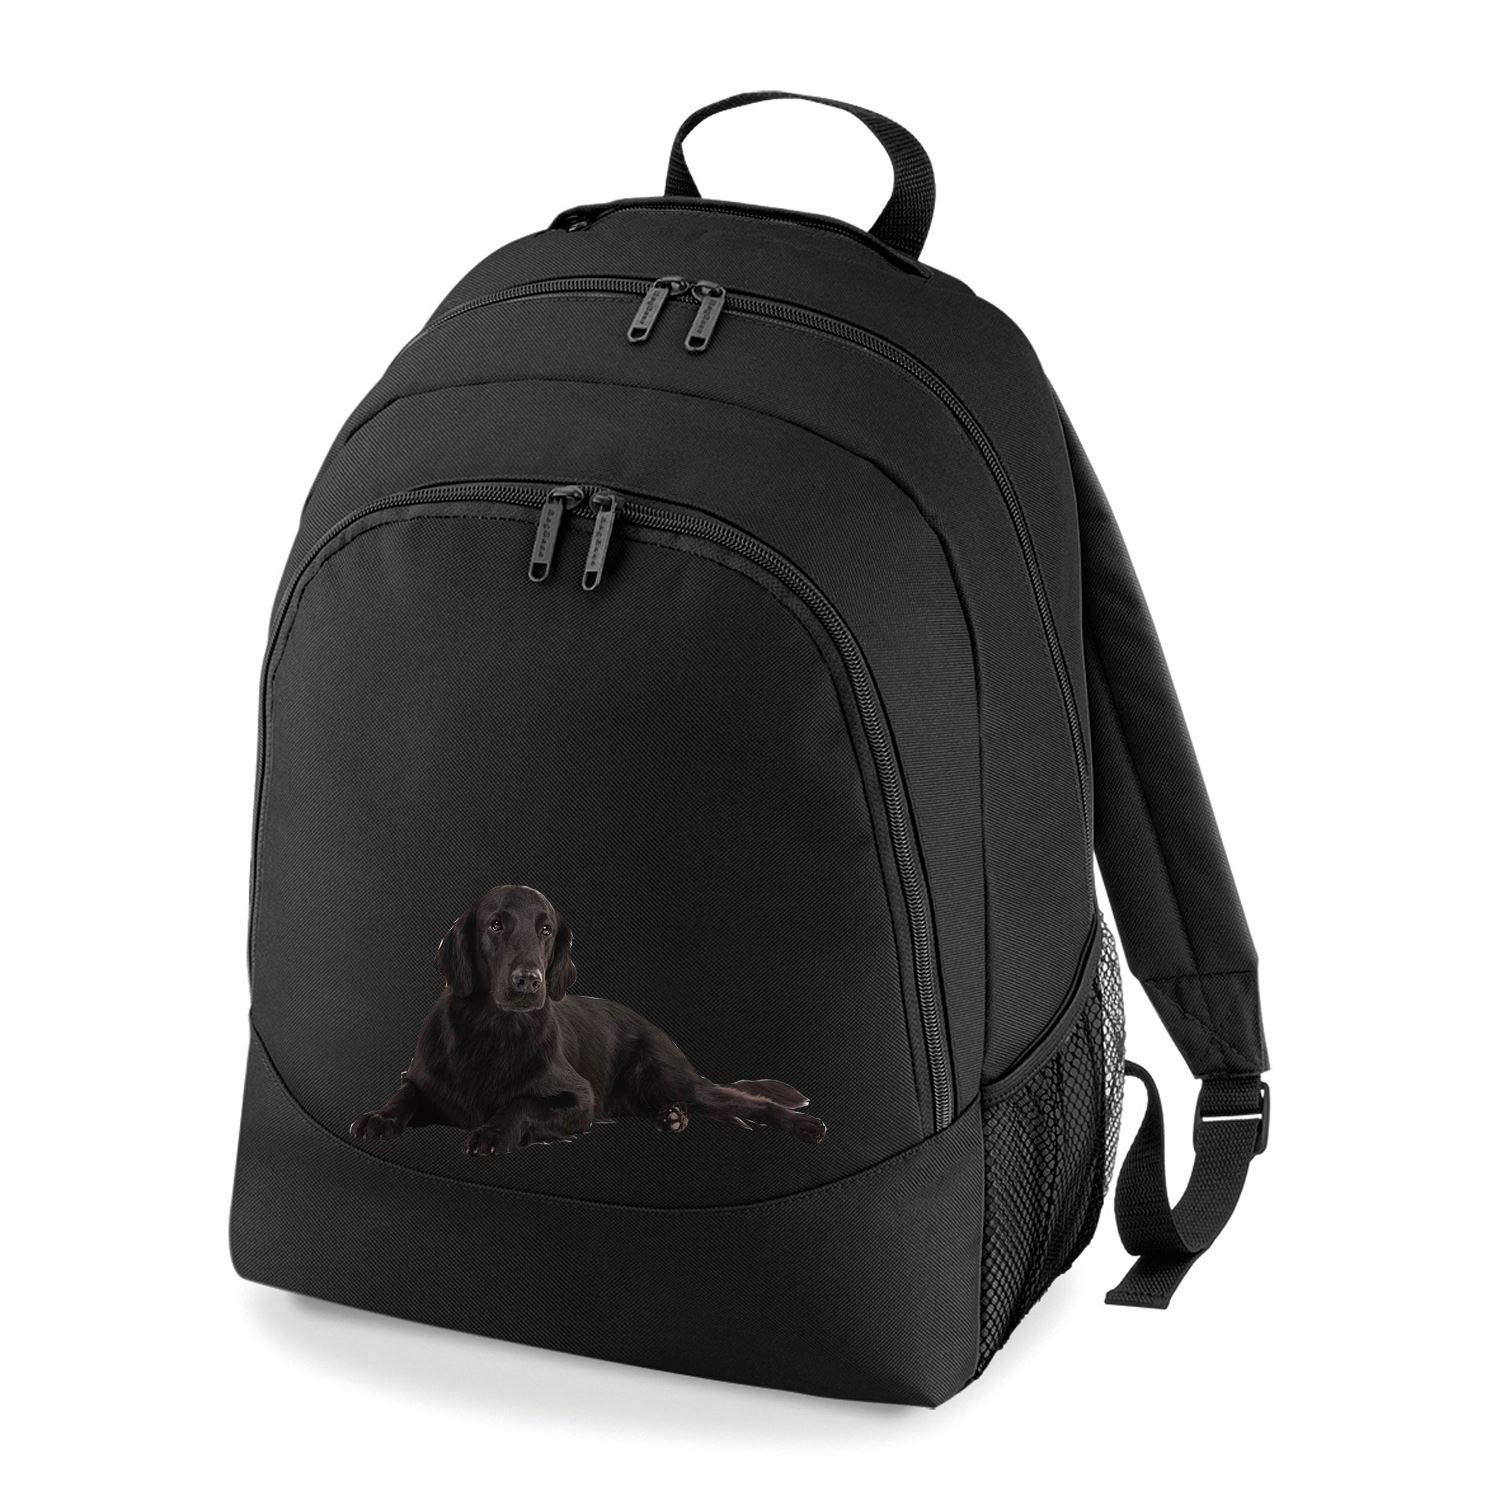 Taurus Clothing Flat-Coated Retriever Dog Personalised Embroidered Rucksack Black